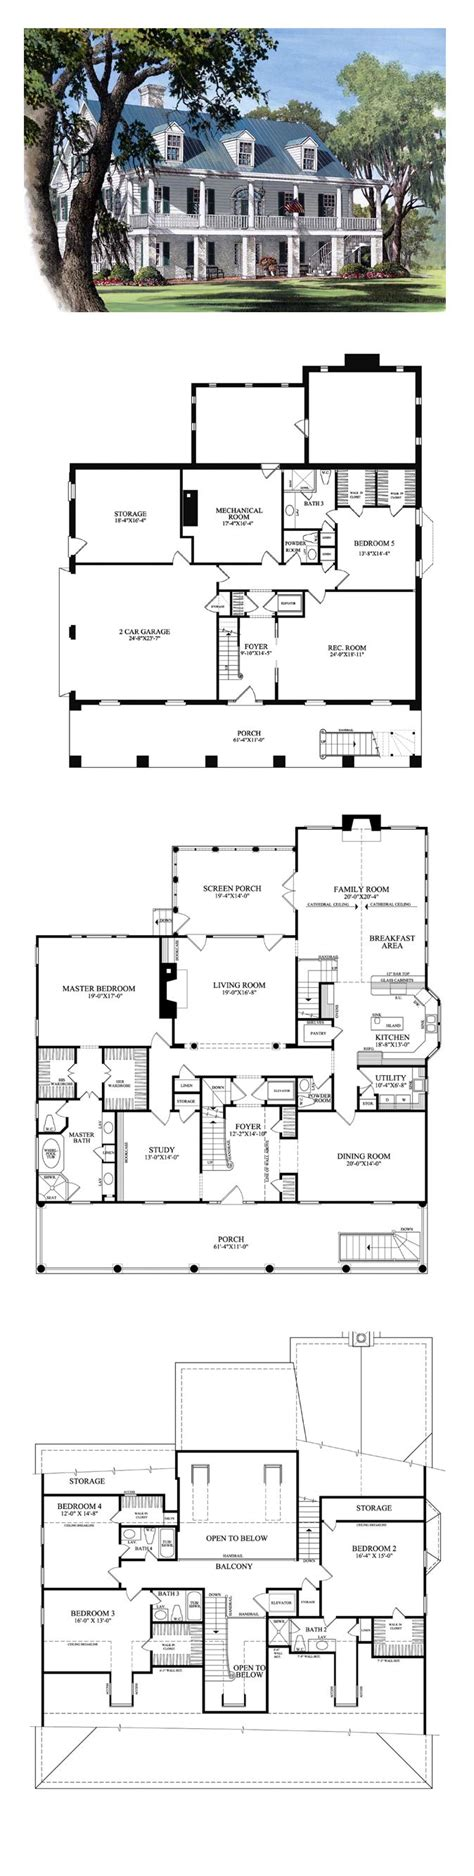 plantation homes floor plans best 25 southern plantation style ideas on